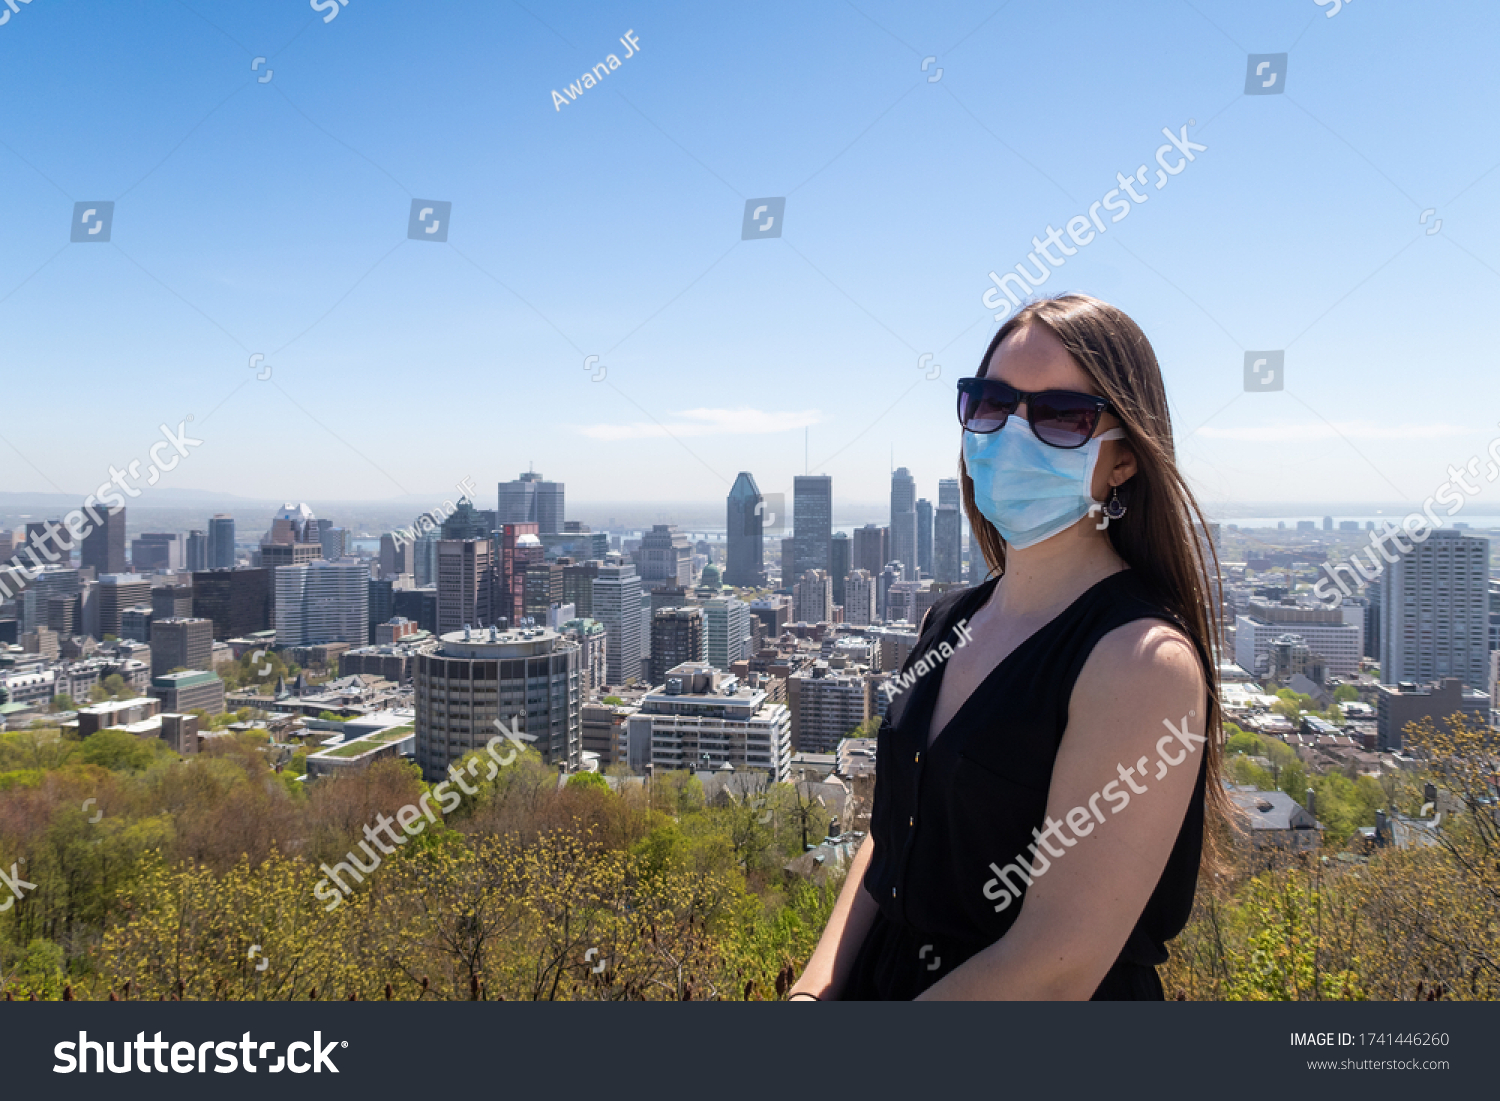 stock-photo-young-woman-wearing-a-chirur